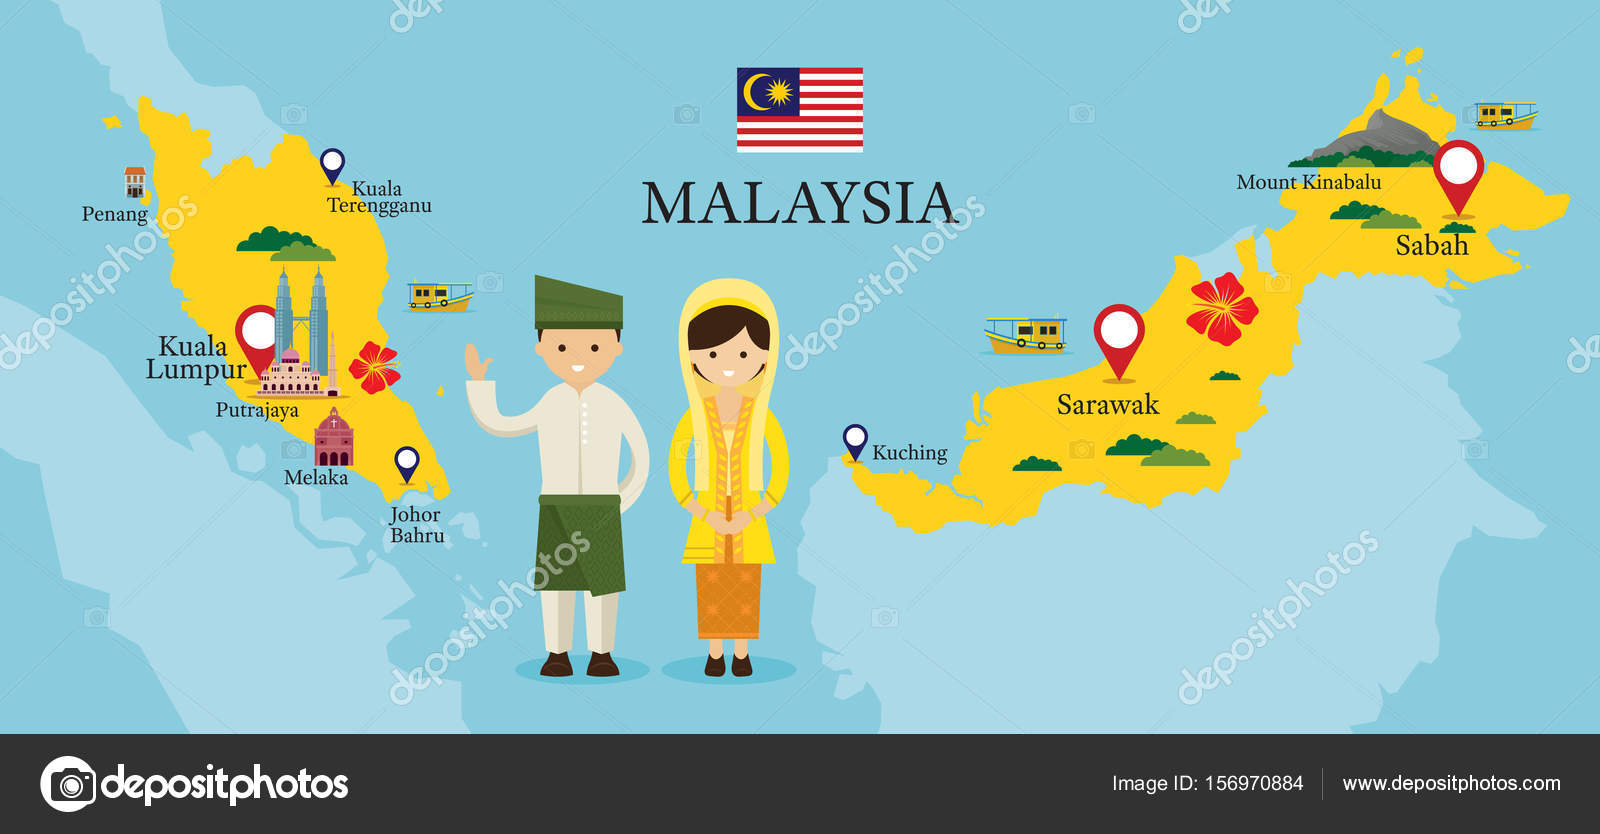 Malaysia Map and Landmarks with People in Traditional Clothing